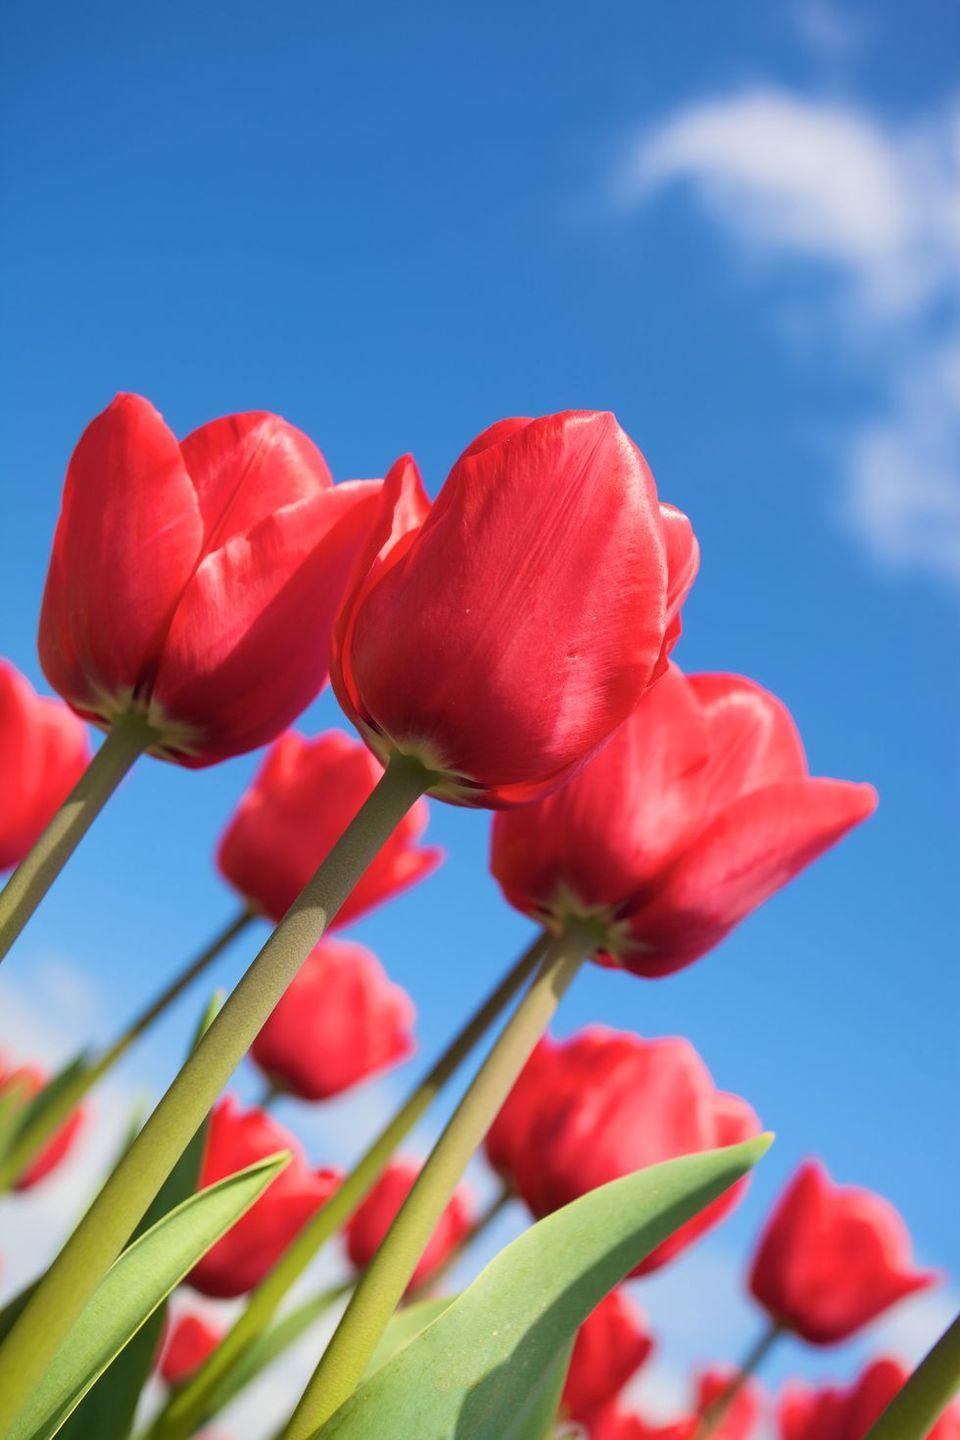 <p>Red roses aren't the only flower with a romantic meaning, so you don't have to totally splurge to show your dedication. Red tulips are also considered a declaration of love, and they're especially gorgeous in the spring. </p>